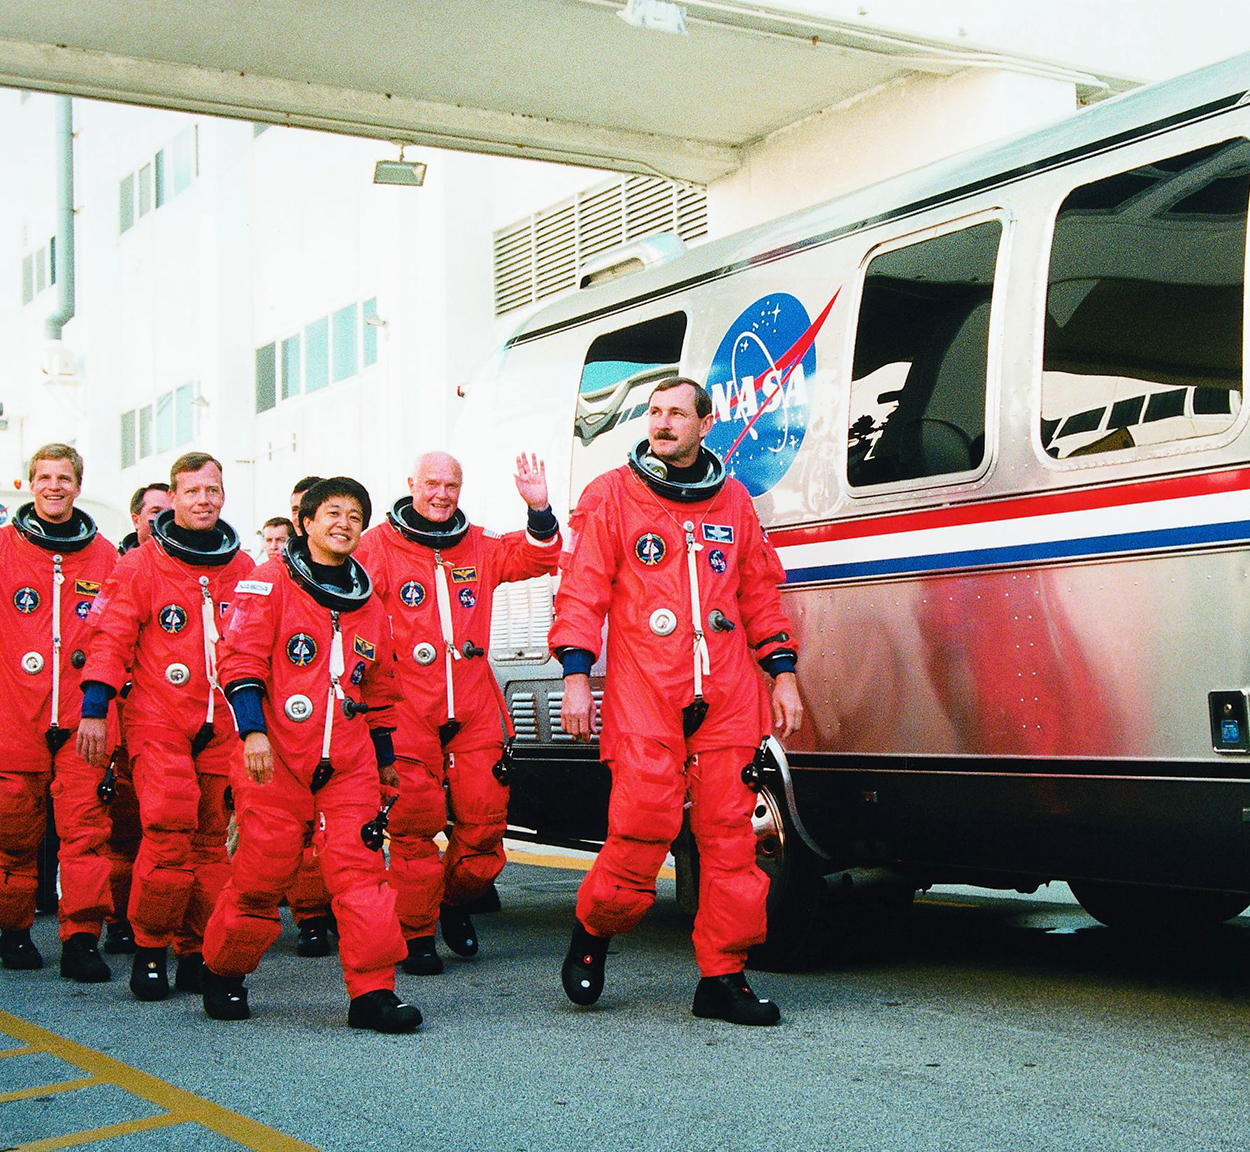 Airstream-Astrovan-NASA-Astronauts-preview